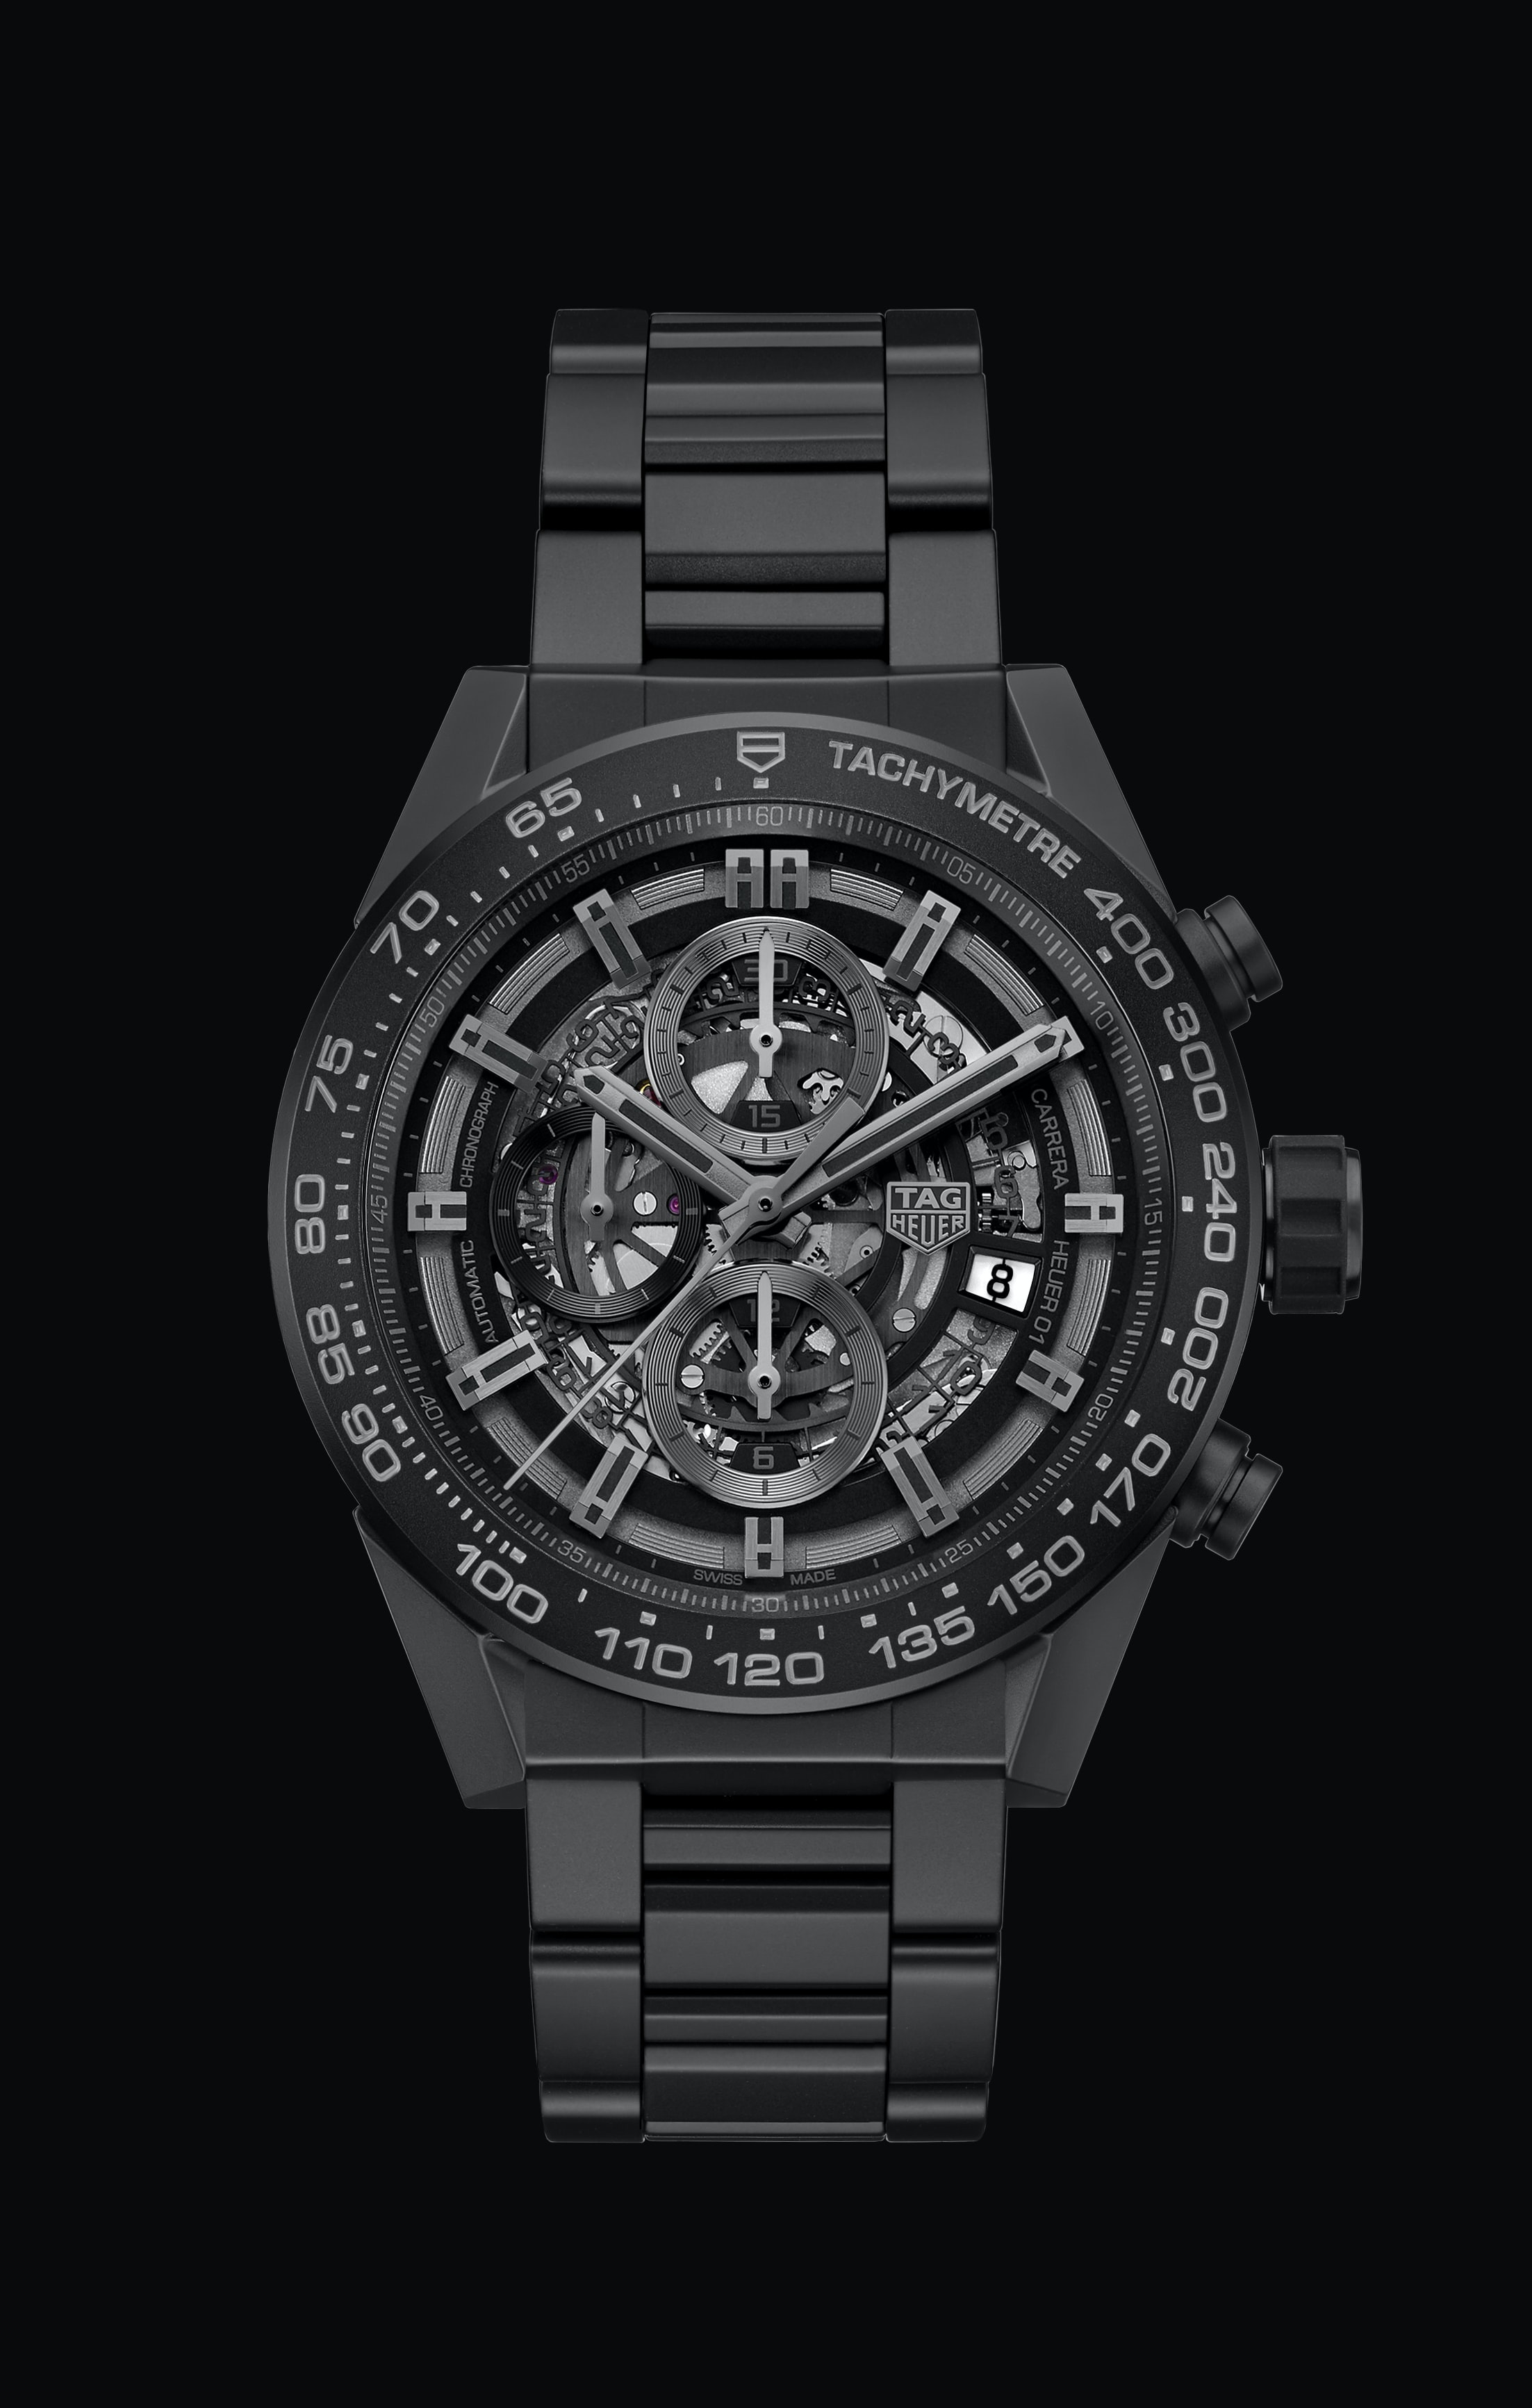 Introducing: The TAG Heuer Carrera Heuer-01 Full Black Matte Ceramic Introducing: The TAG Heuer Carrera Heuer-01 Full Black Matte Ceramic CAR2A91